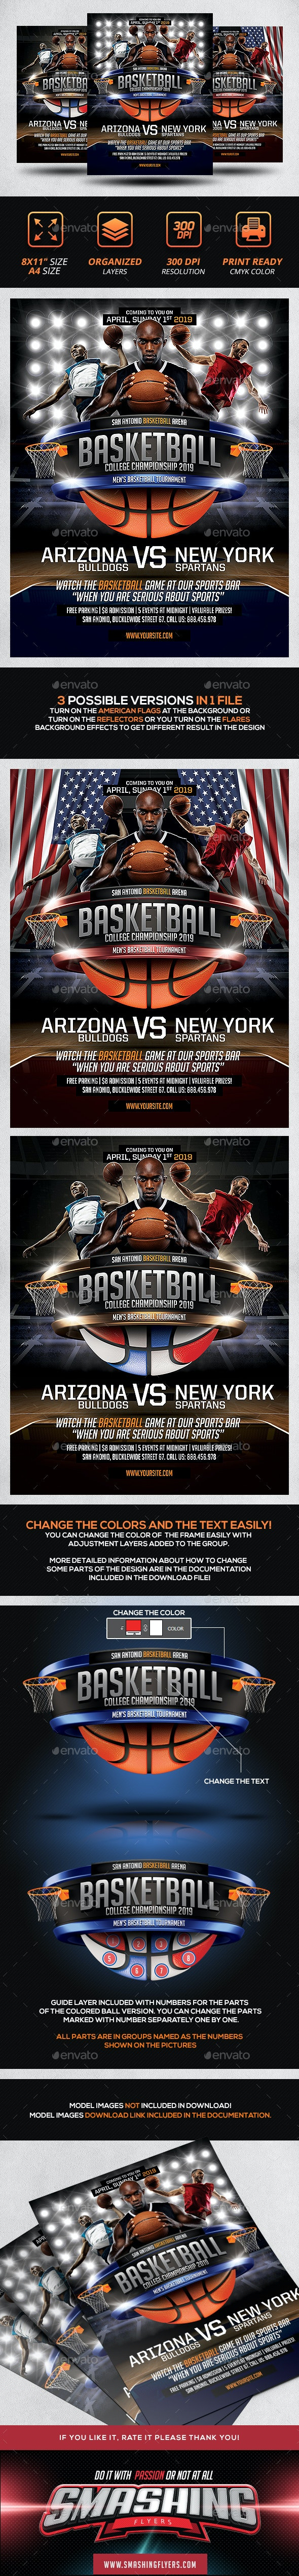 Basketball Game Poster Template - Sports Events